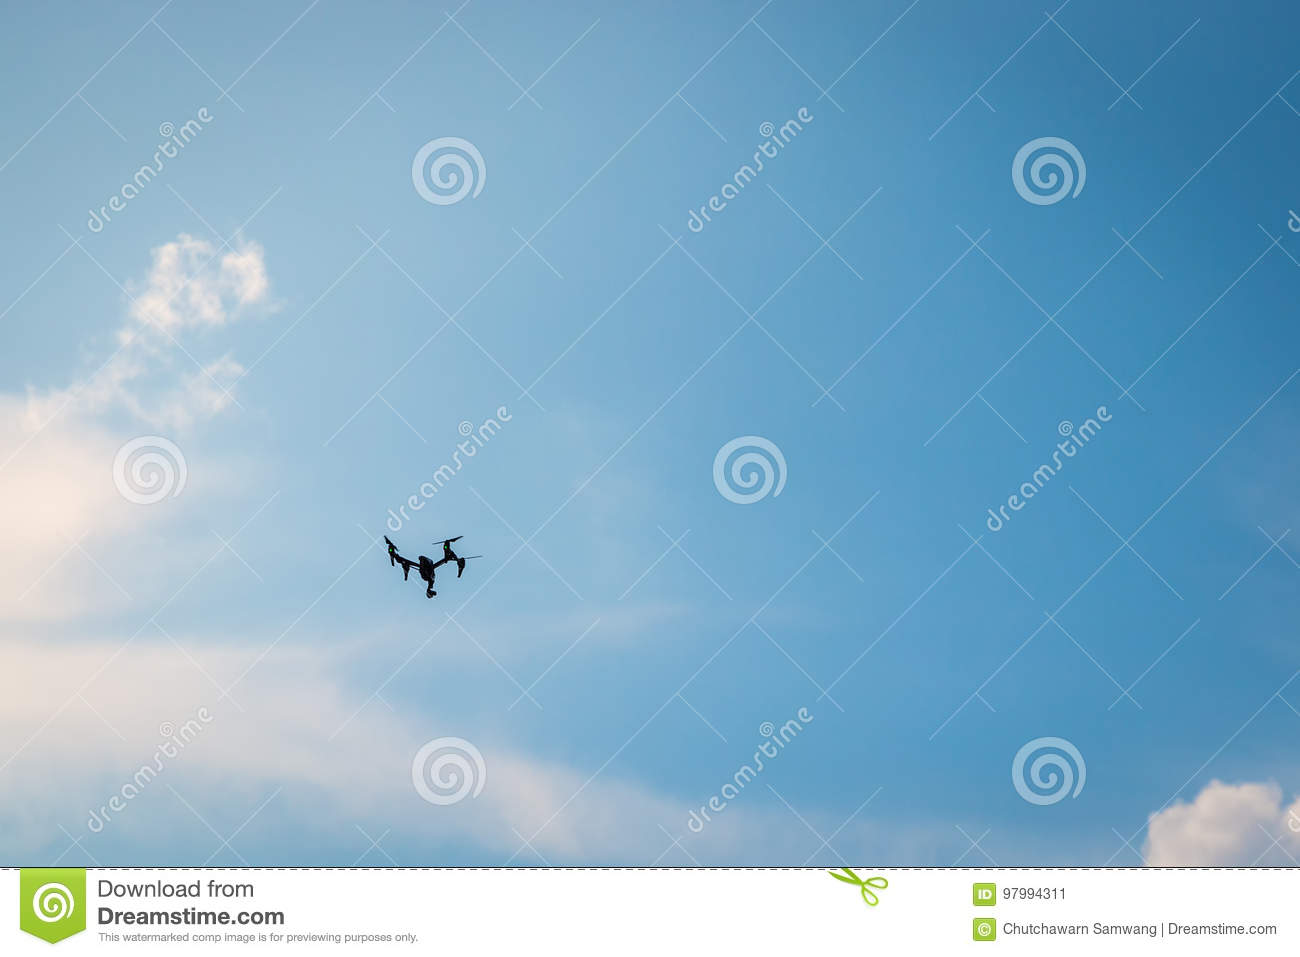 Drone hovering in a blue sky